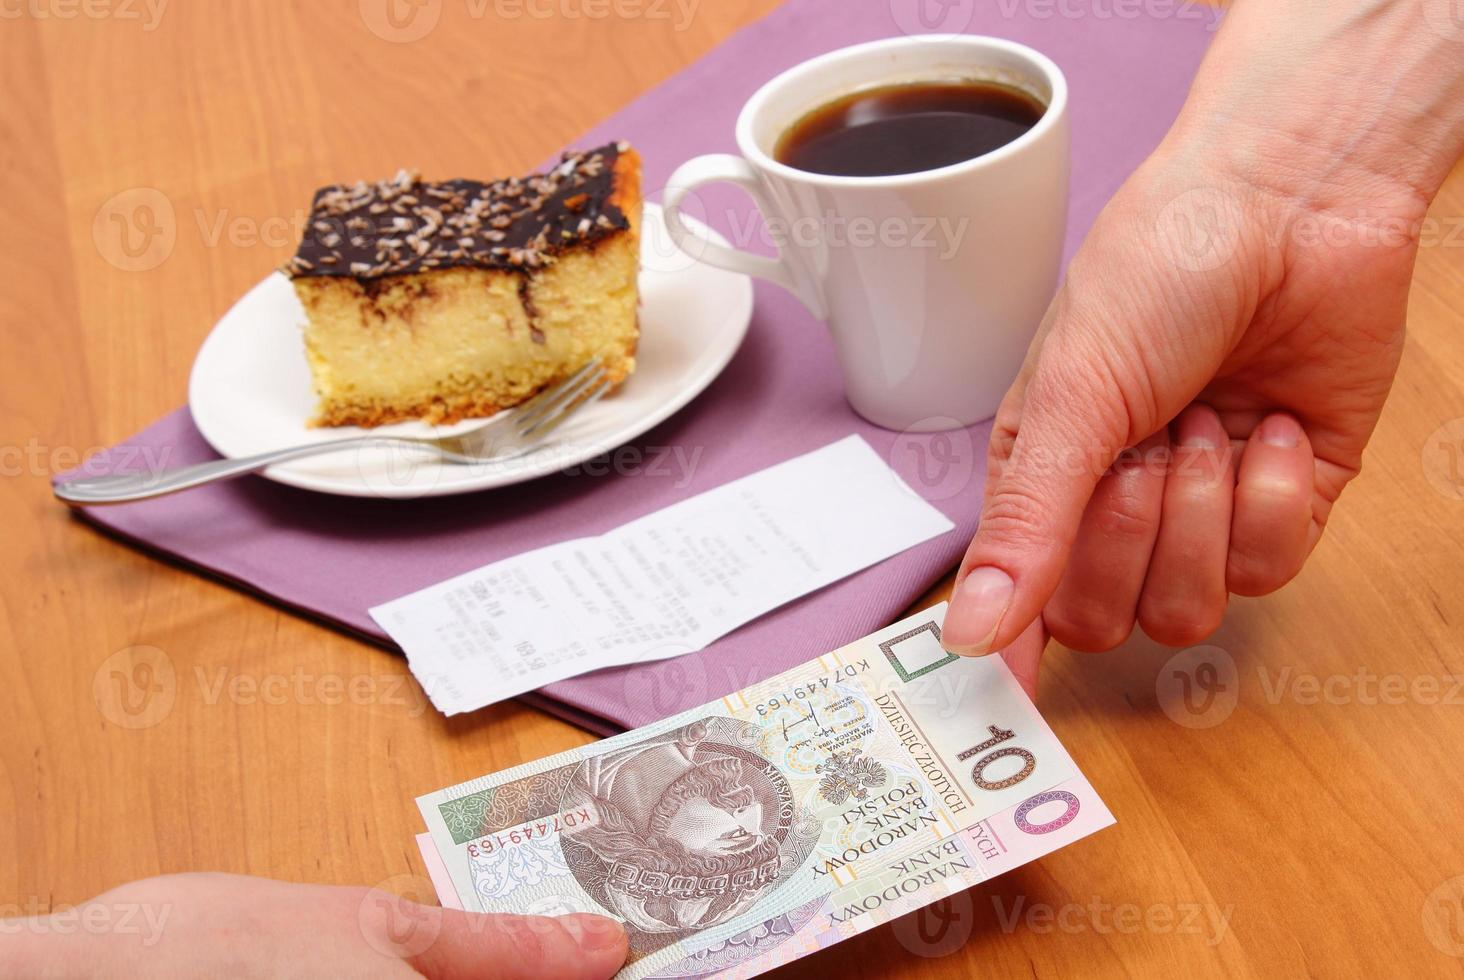 Paying for cheesecake and coffee in the cafe, finance concept photo